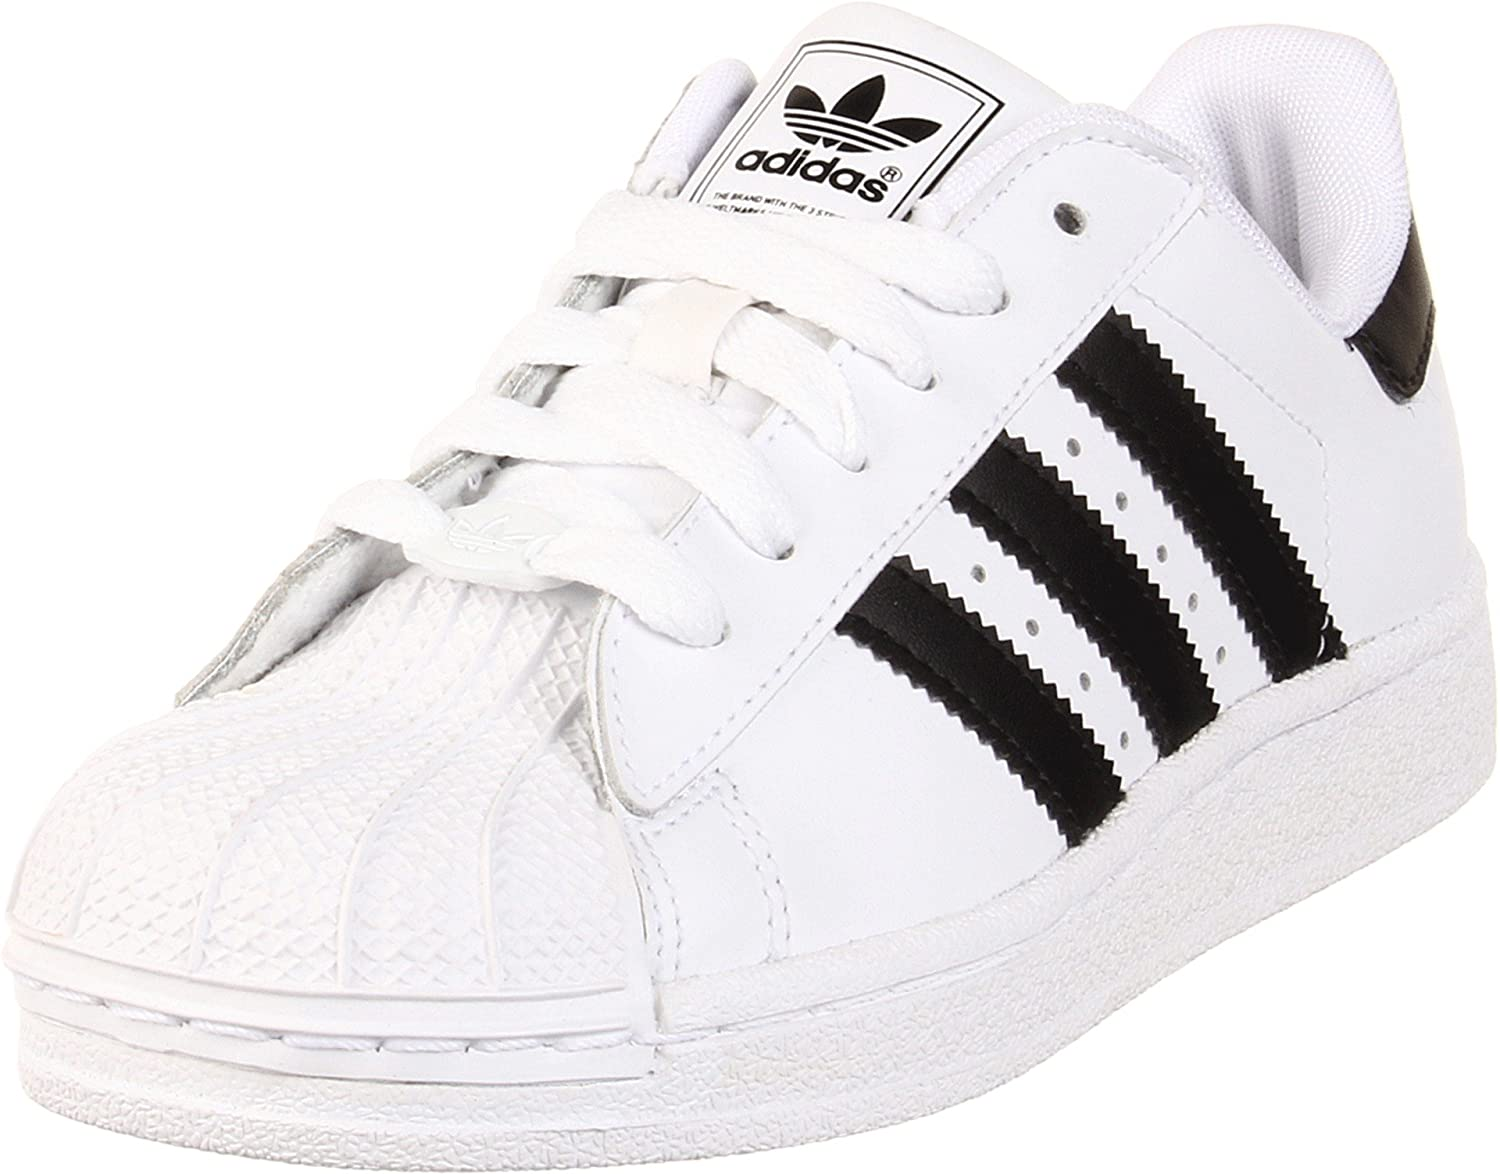 Superstar 80s Cut Out Shoes adidas UK